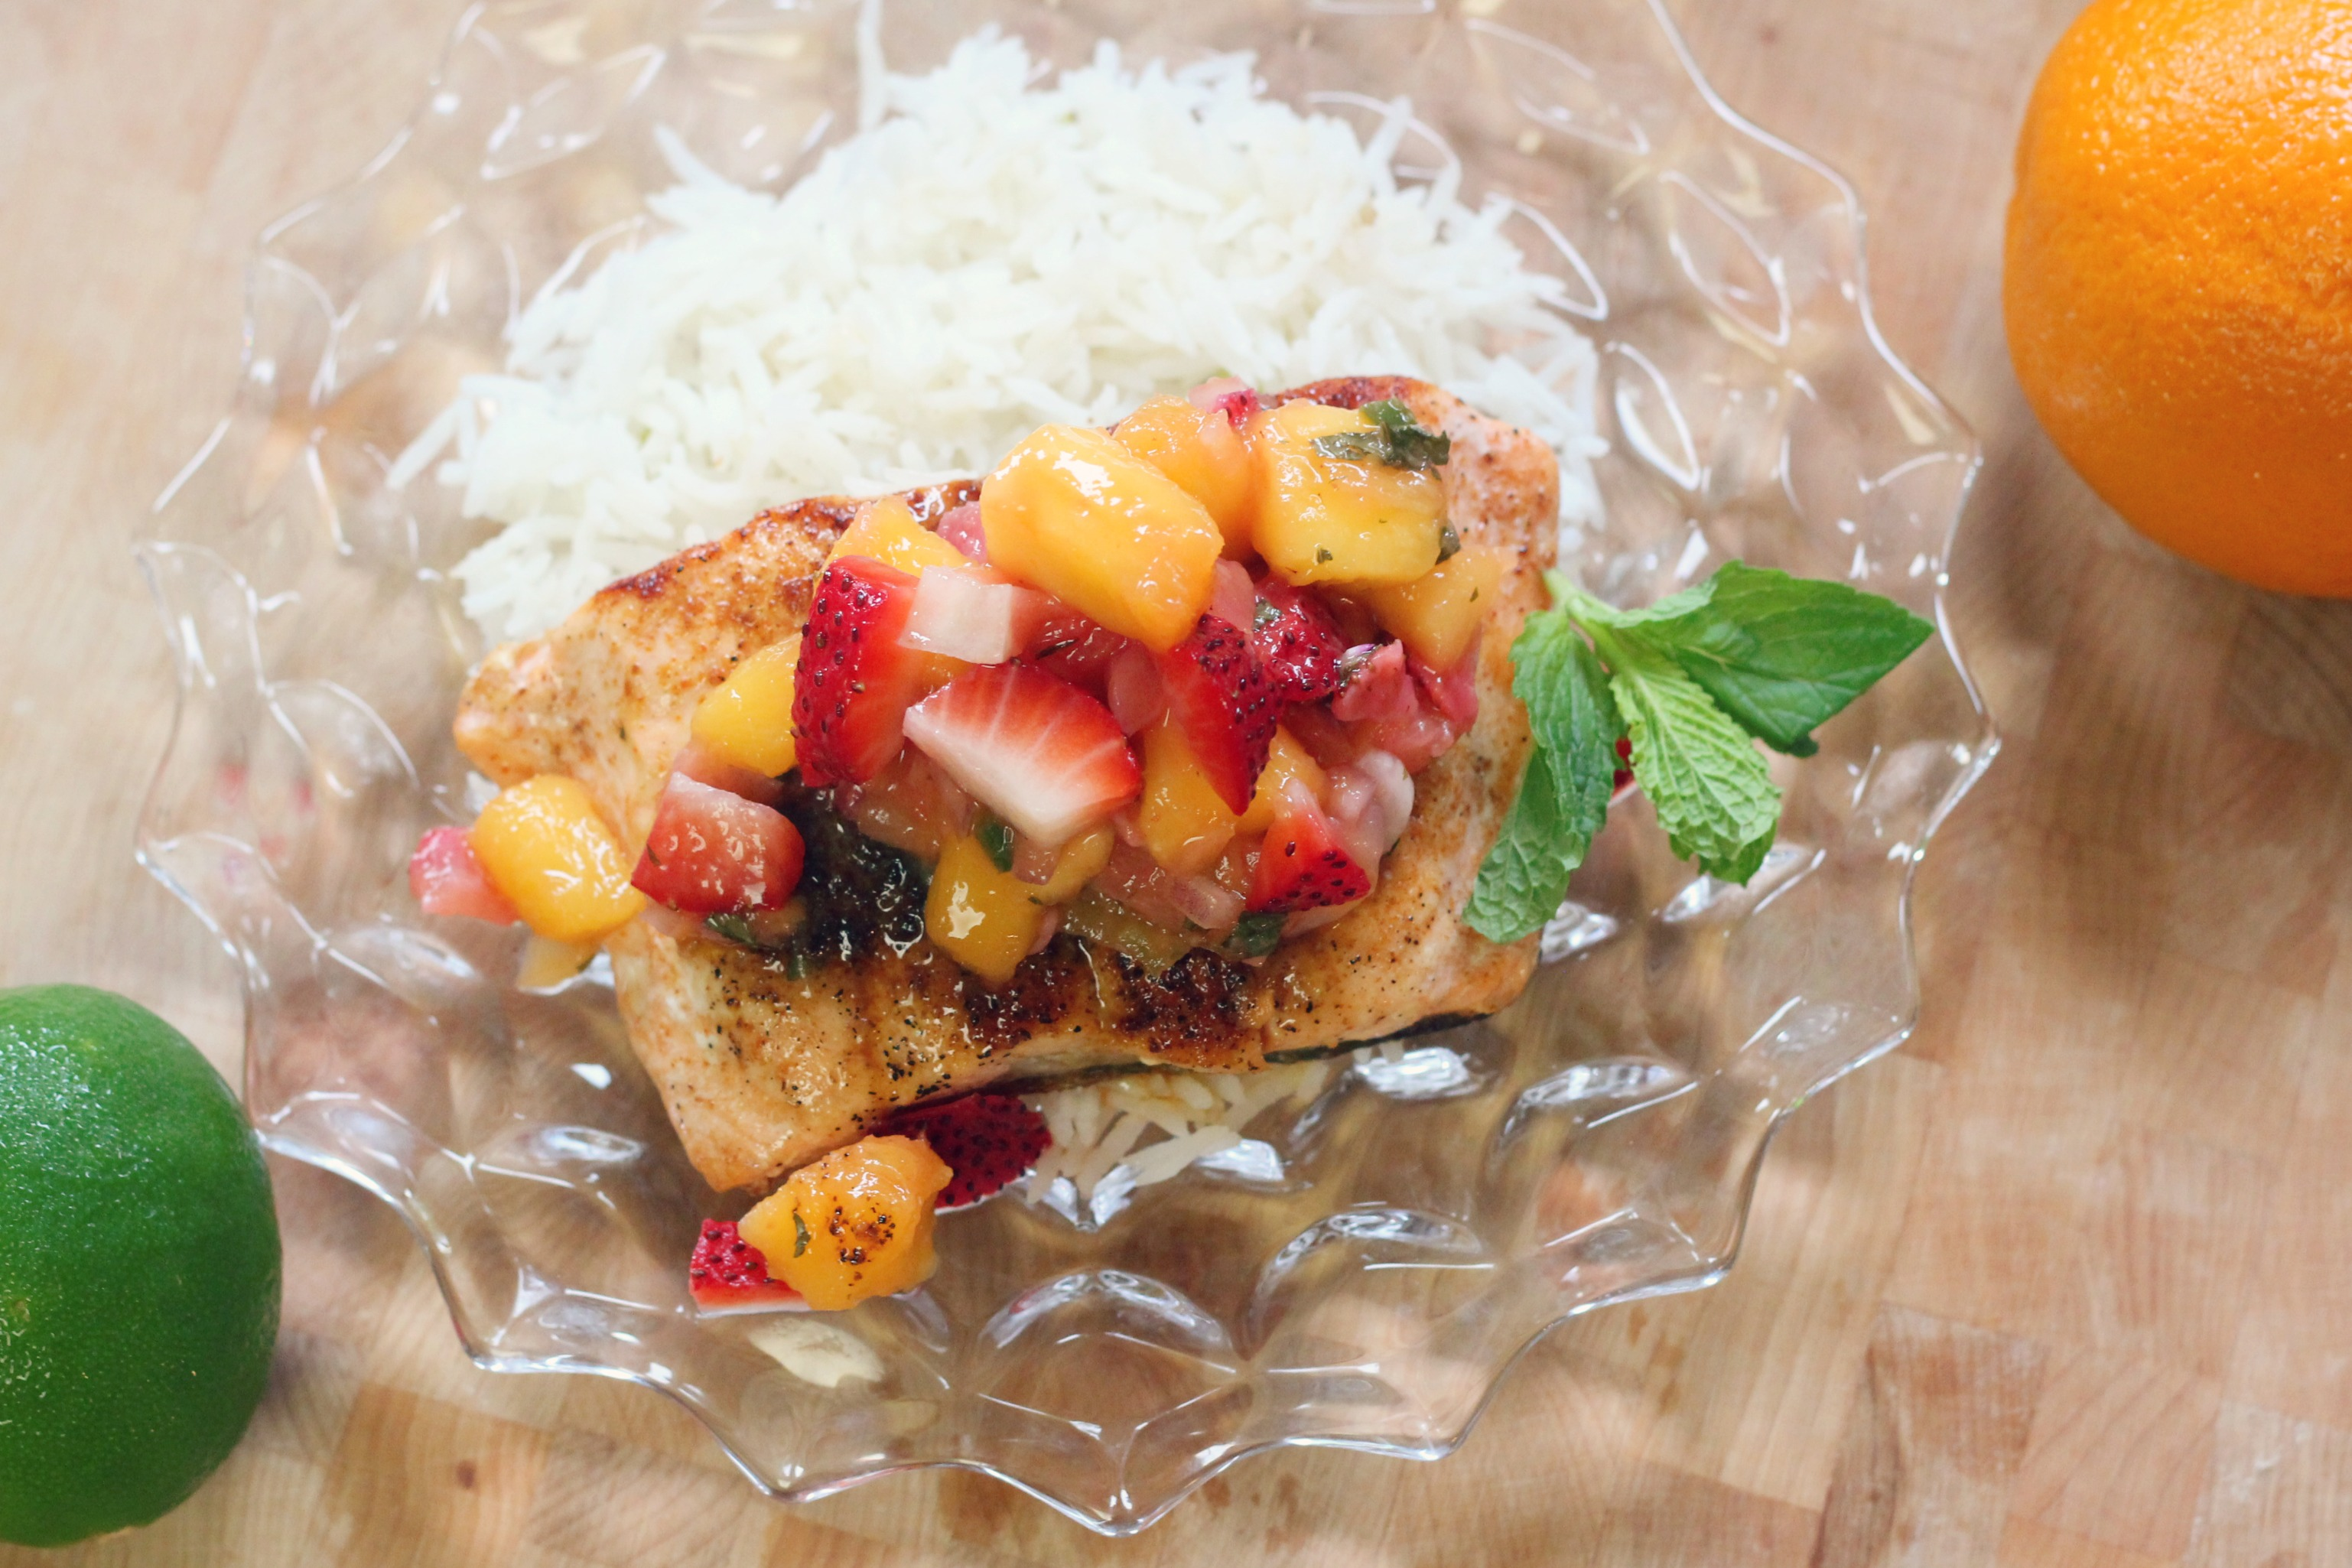 Seared Tropical Salmon with Mango Salsa